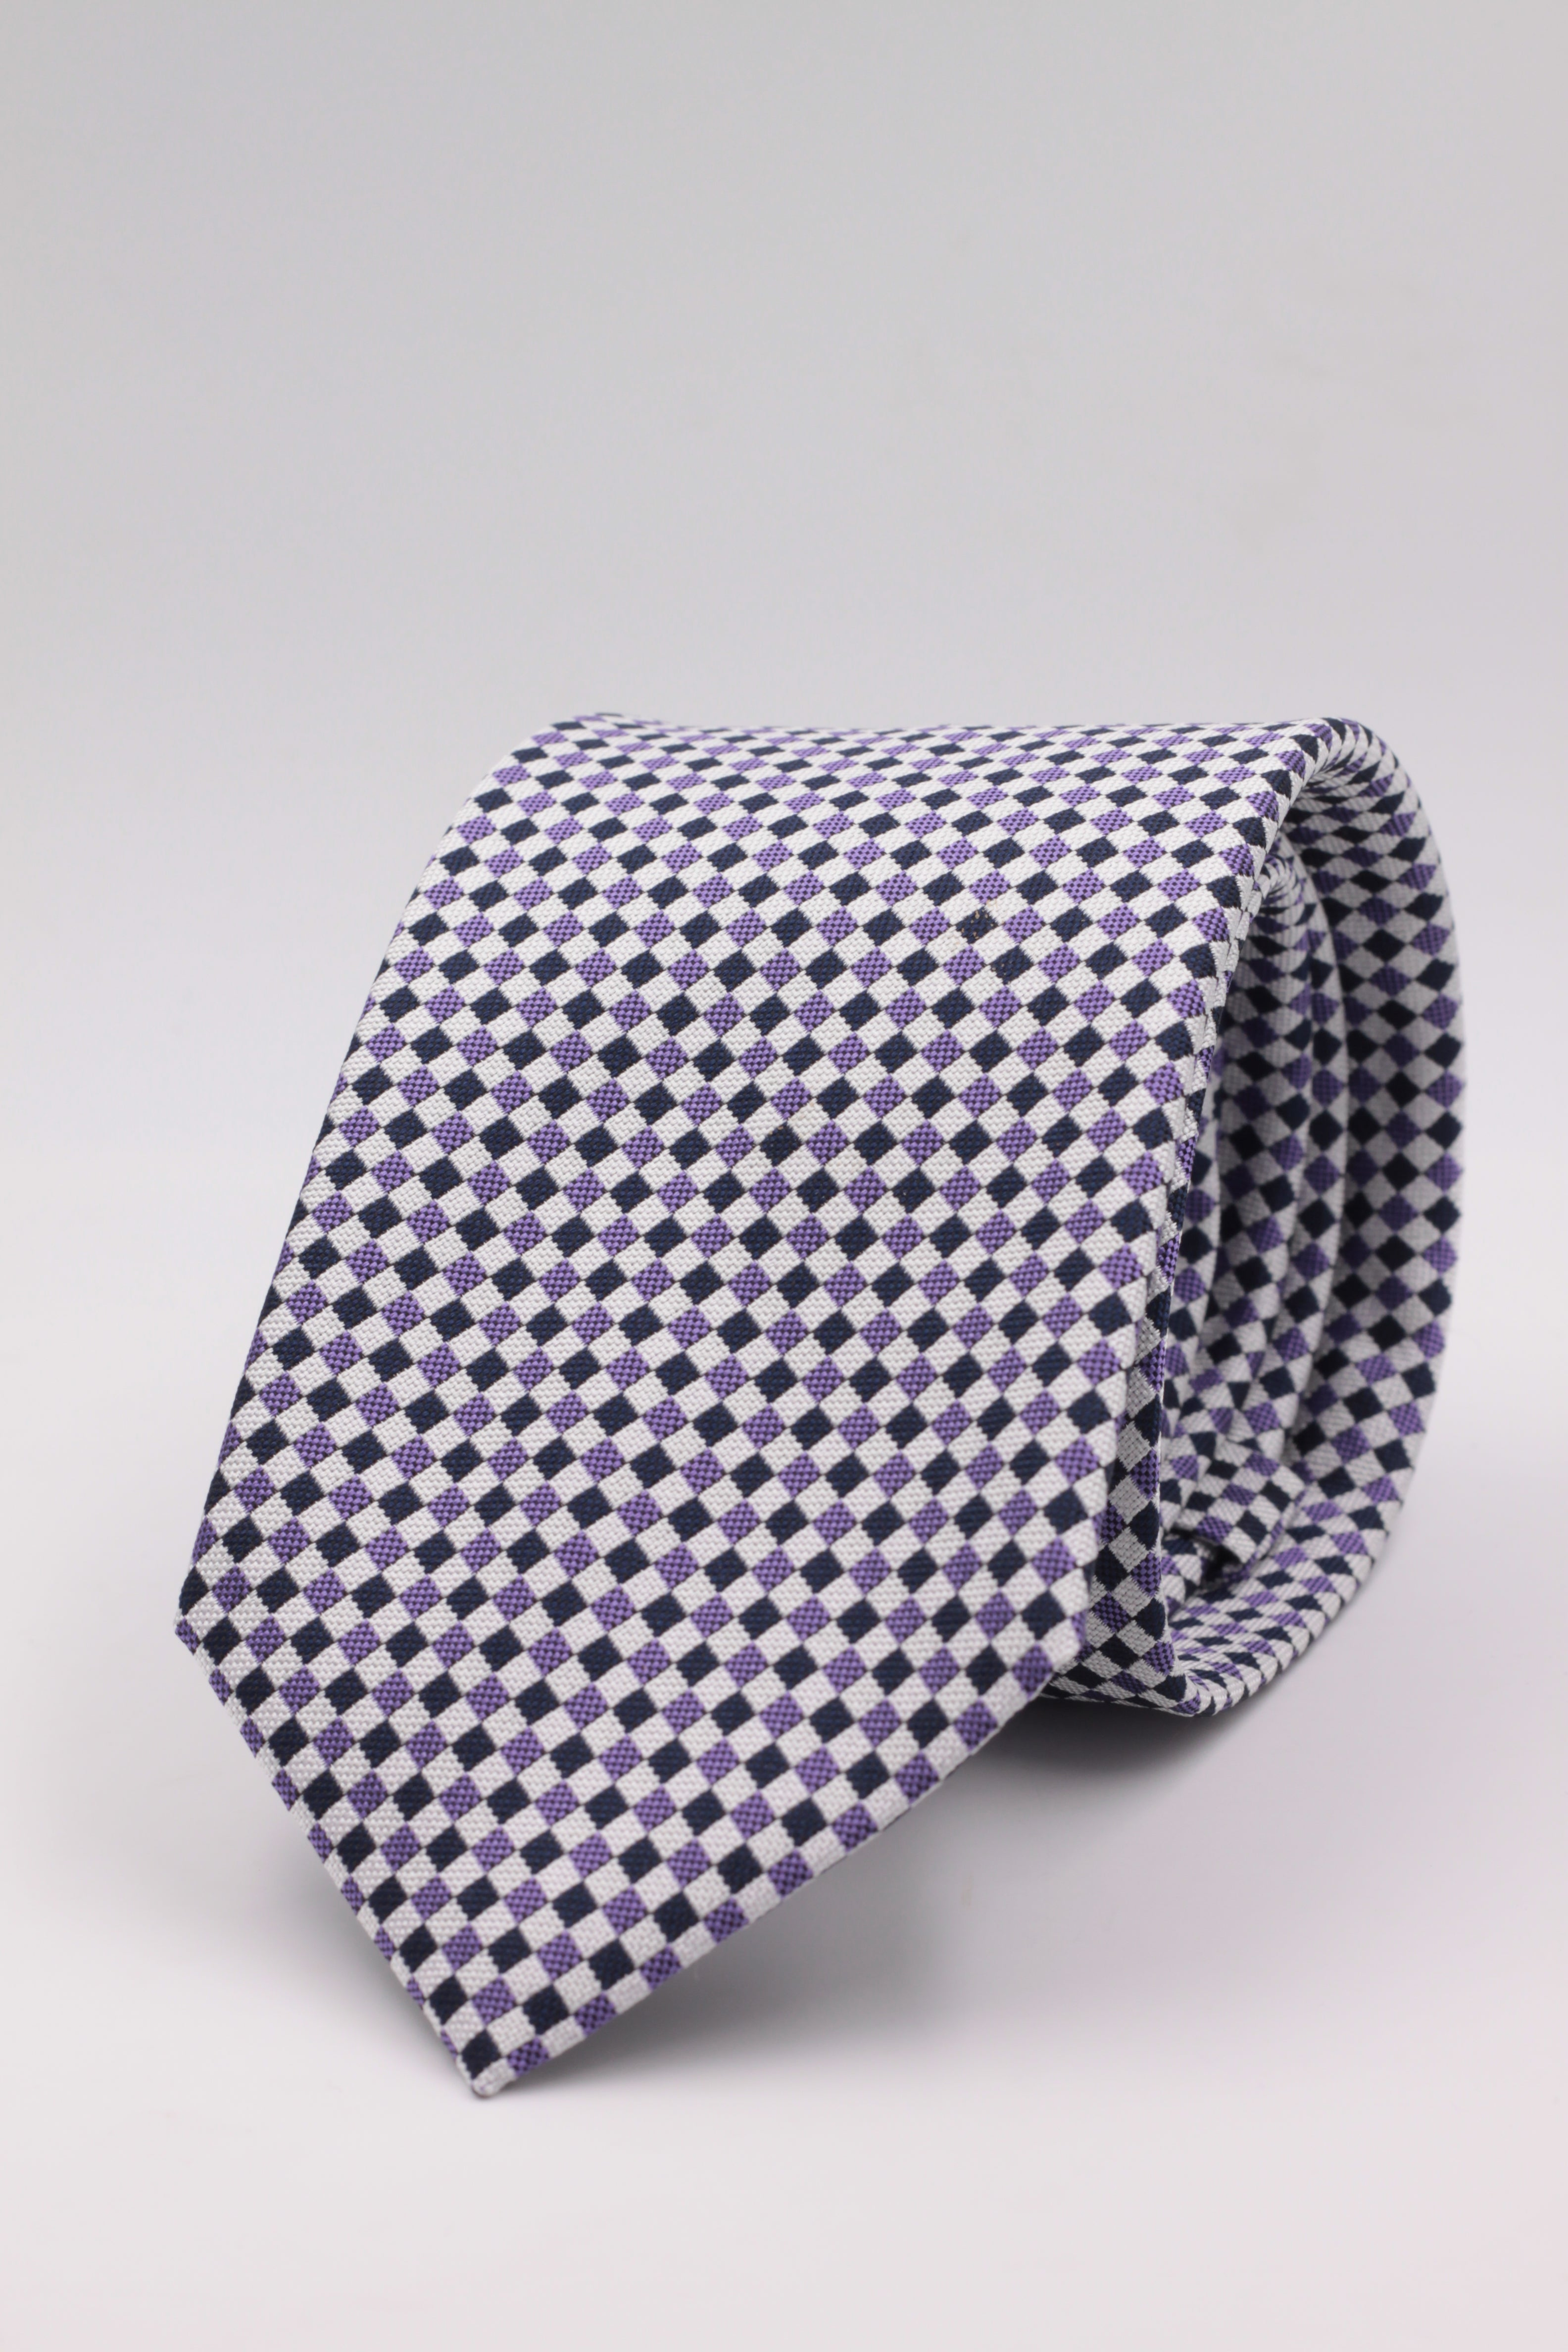 Cruciani & Bella 100% Woven Jacquard Silk Italian Fabric Tipped Dark Blue and Purple Optical tie Handmade in italy 8 x 150 cm